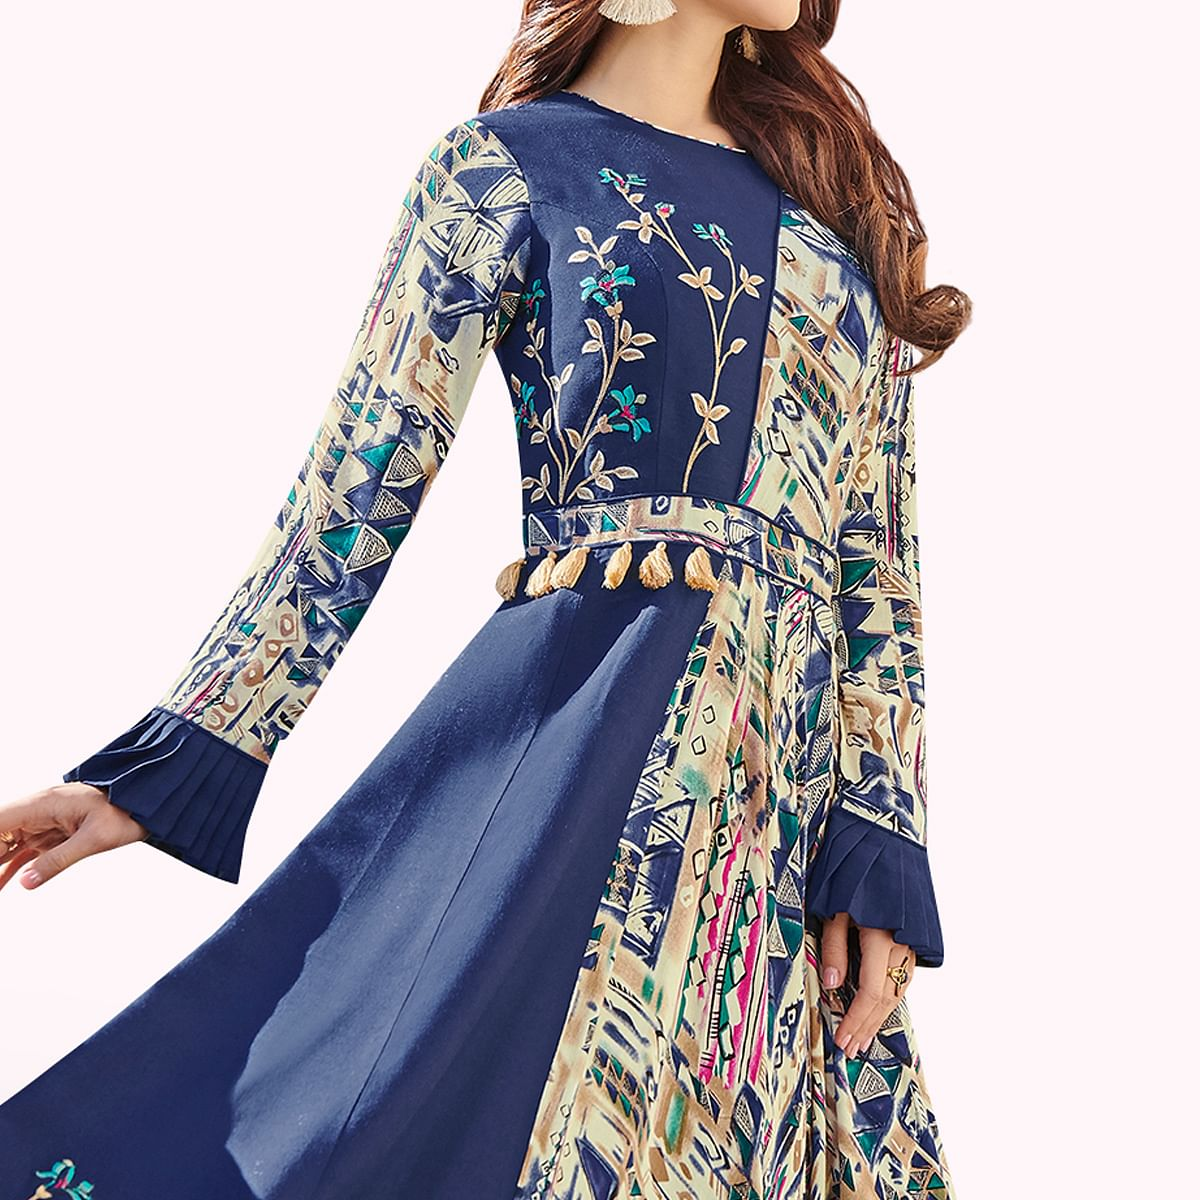 Sophisticated Navy Blue Colored Party Wear Printed Rayon Kurti